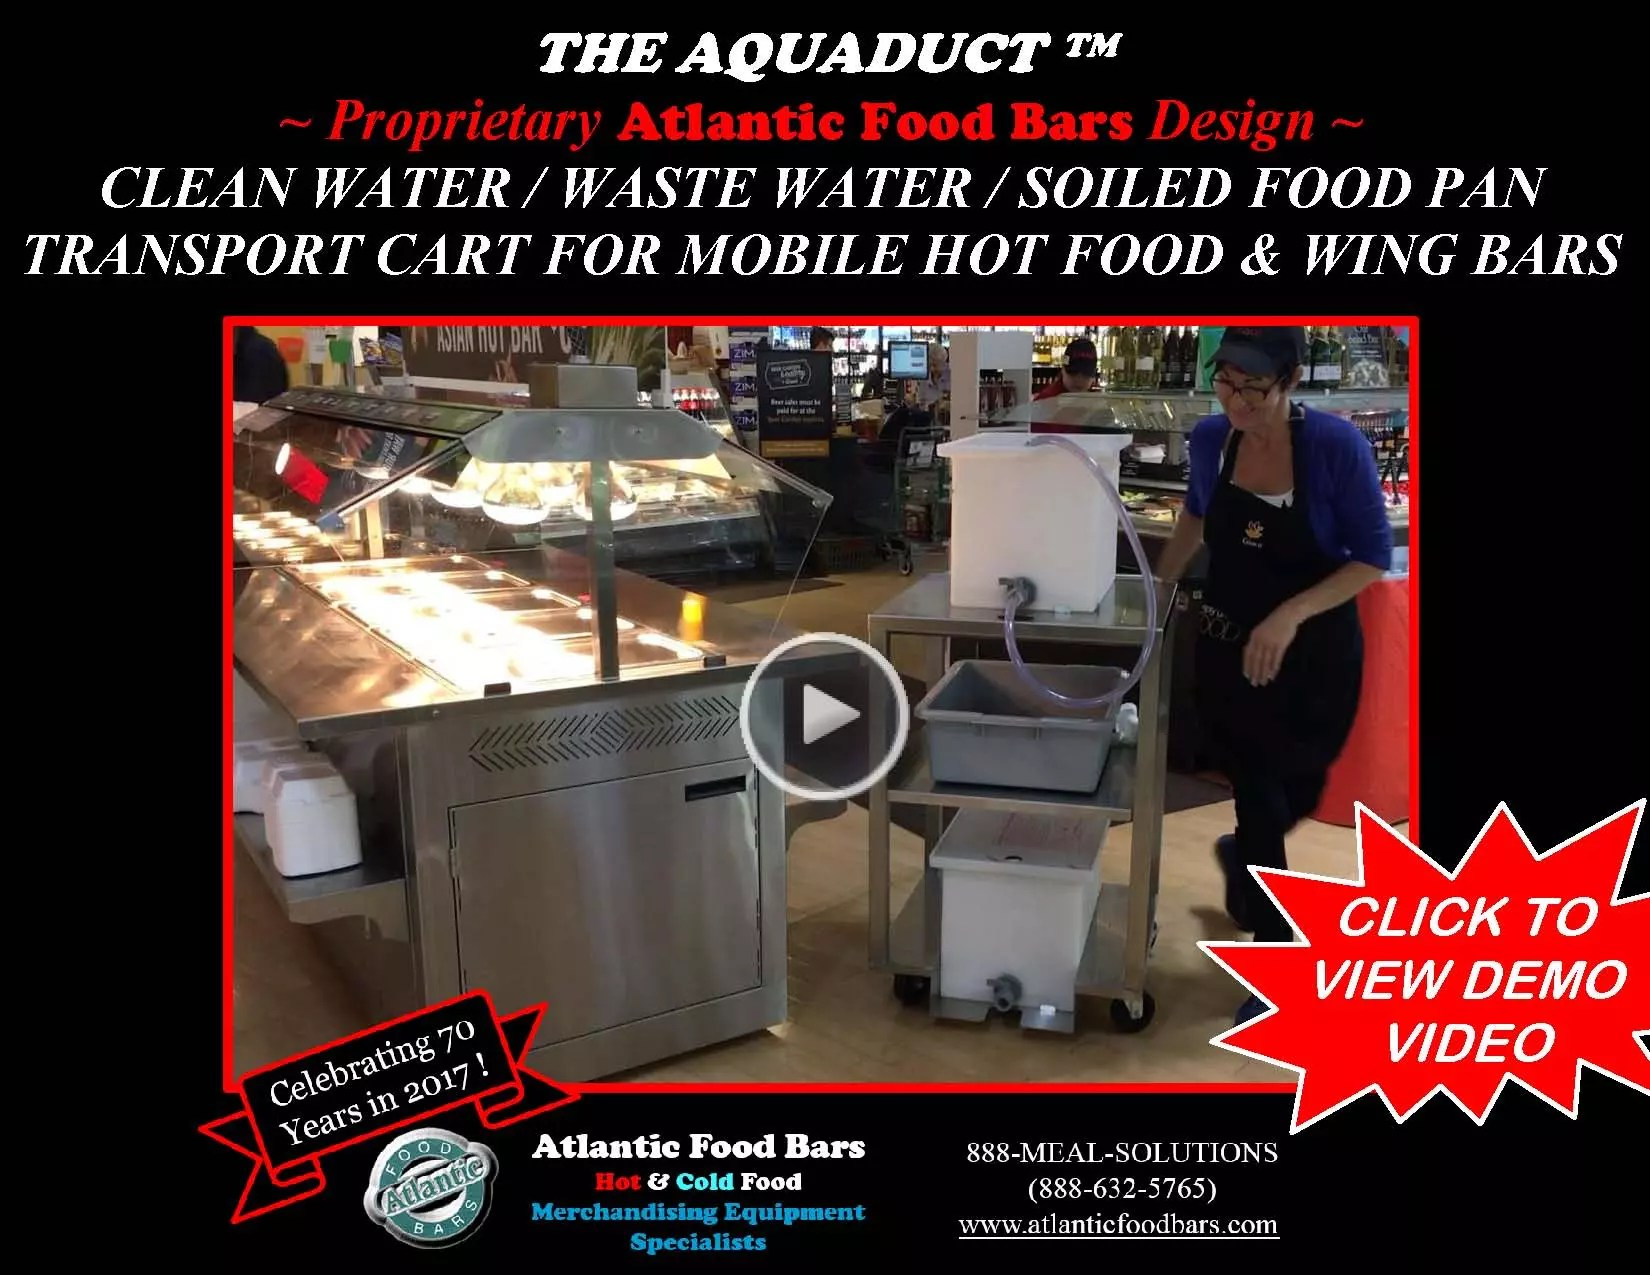 Atlantic Food Bars - The AquaDuct Cleaning and Water Maintenance System for Mobile Hot Food Bars - WTC MHFC_Page_2